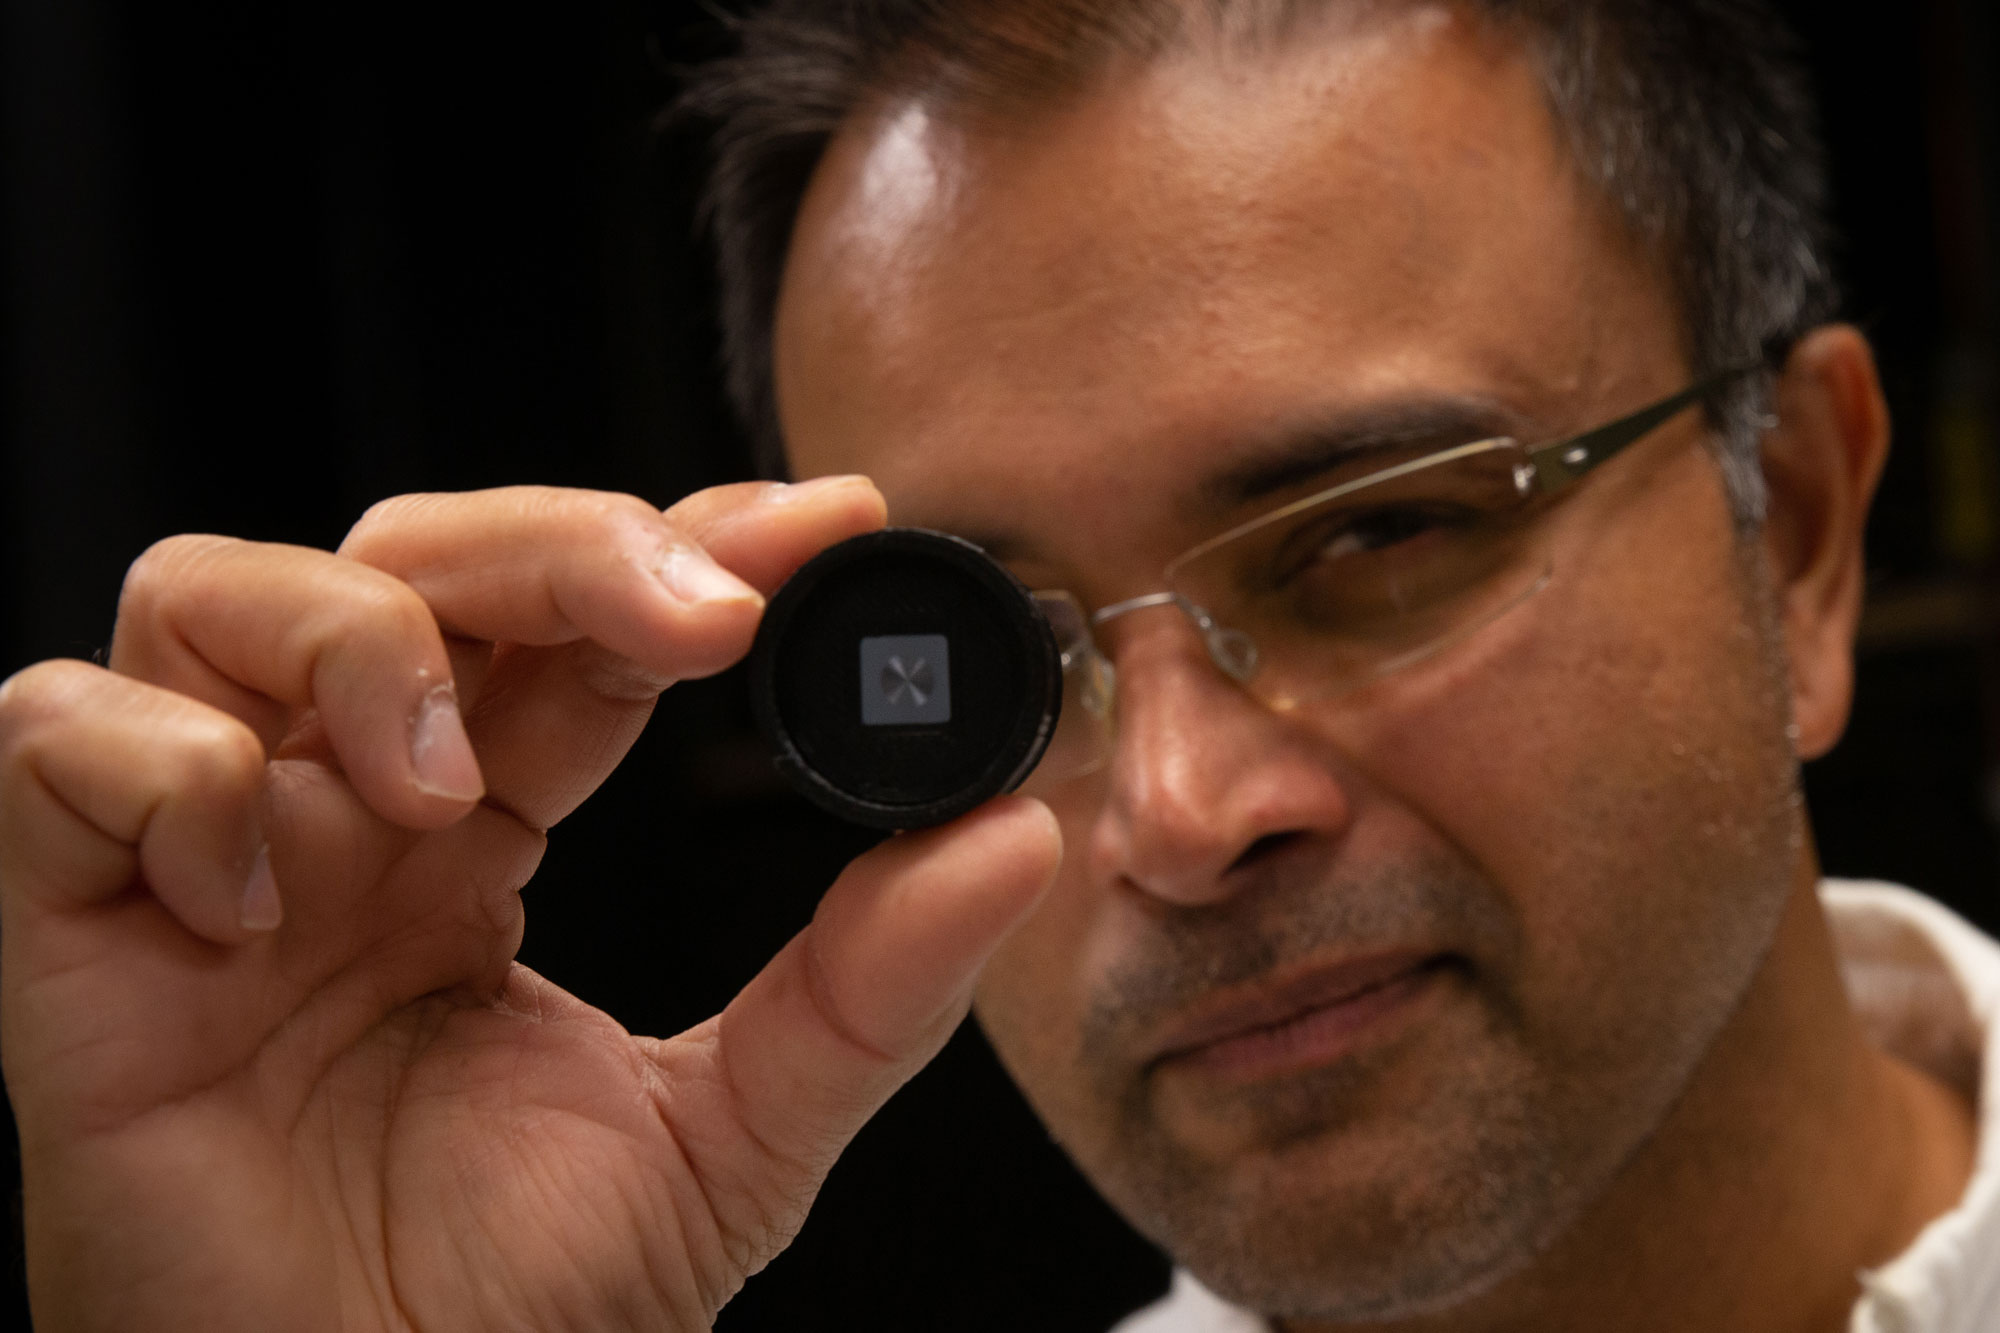 University of Utah electrical and computer engineering associate professor Rajesh Menon is part of a team that has developed a super thin, flat and lightweight optical lens capable of filming in the dark